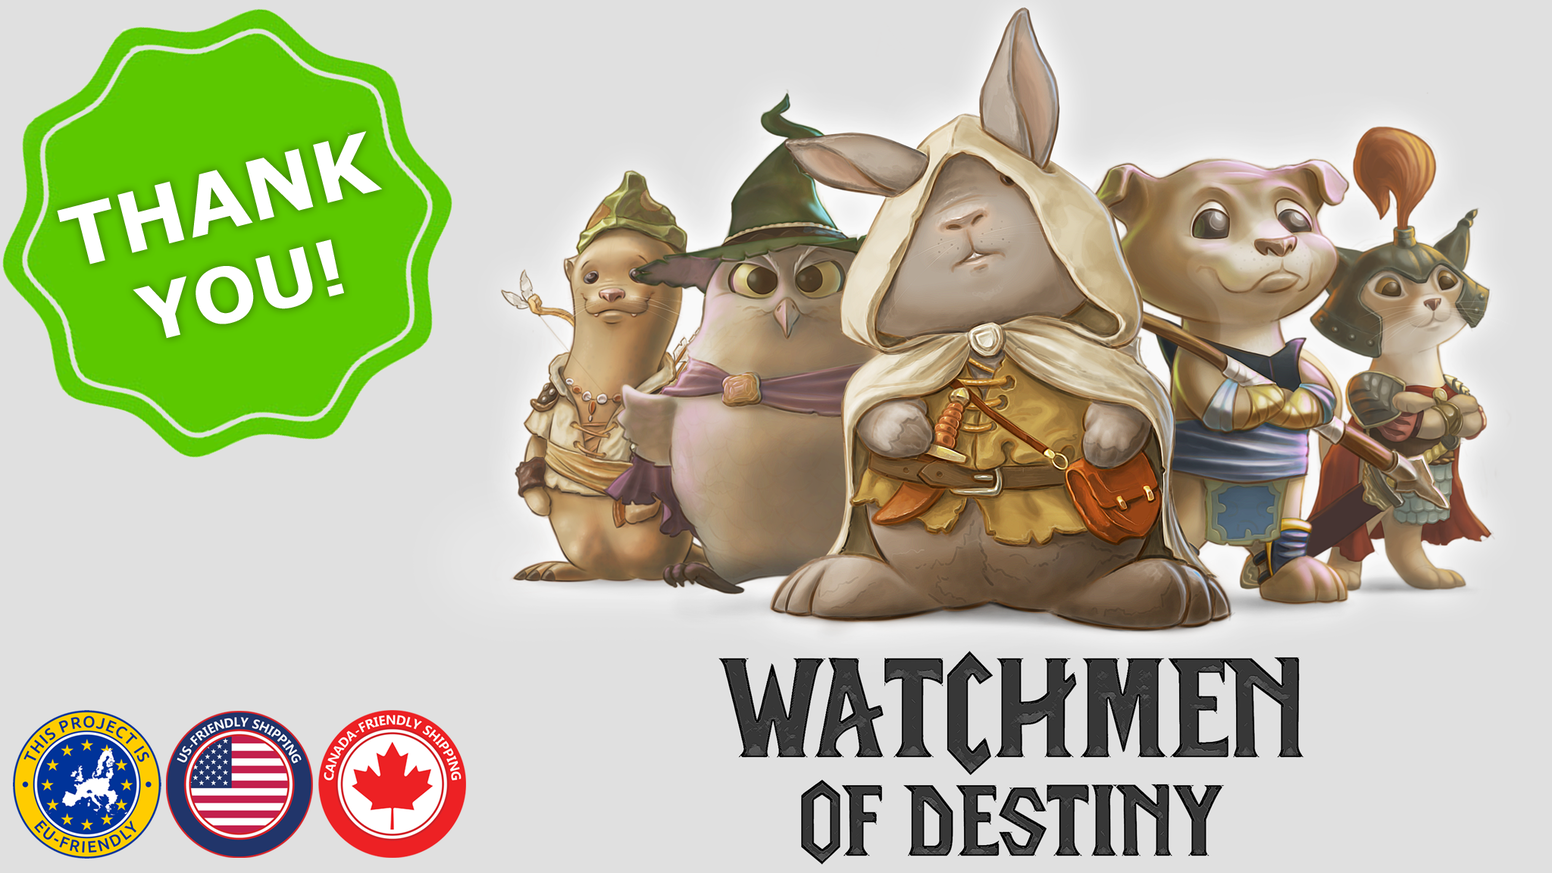 Assembly a great army of watchmen & protect the Tree of Destiny. Use special abilities & make tough choices. Card game for 2-5 players.